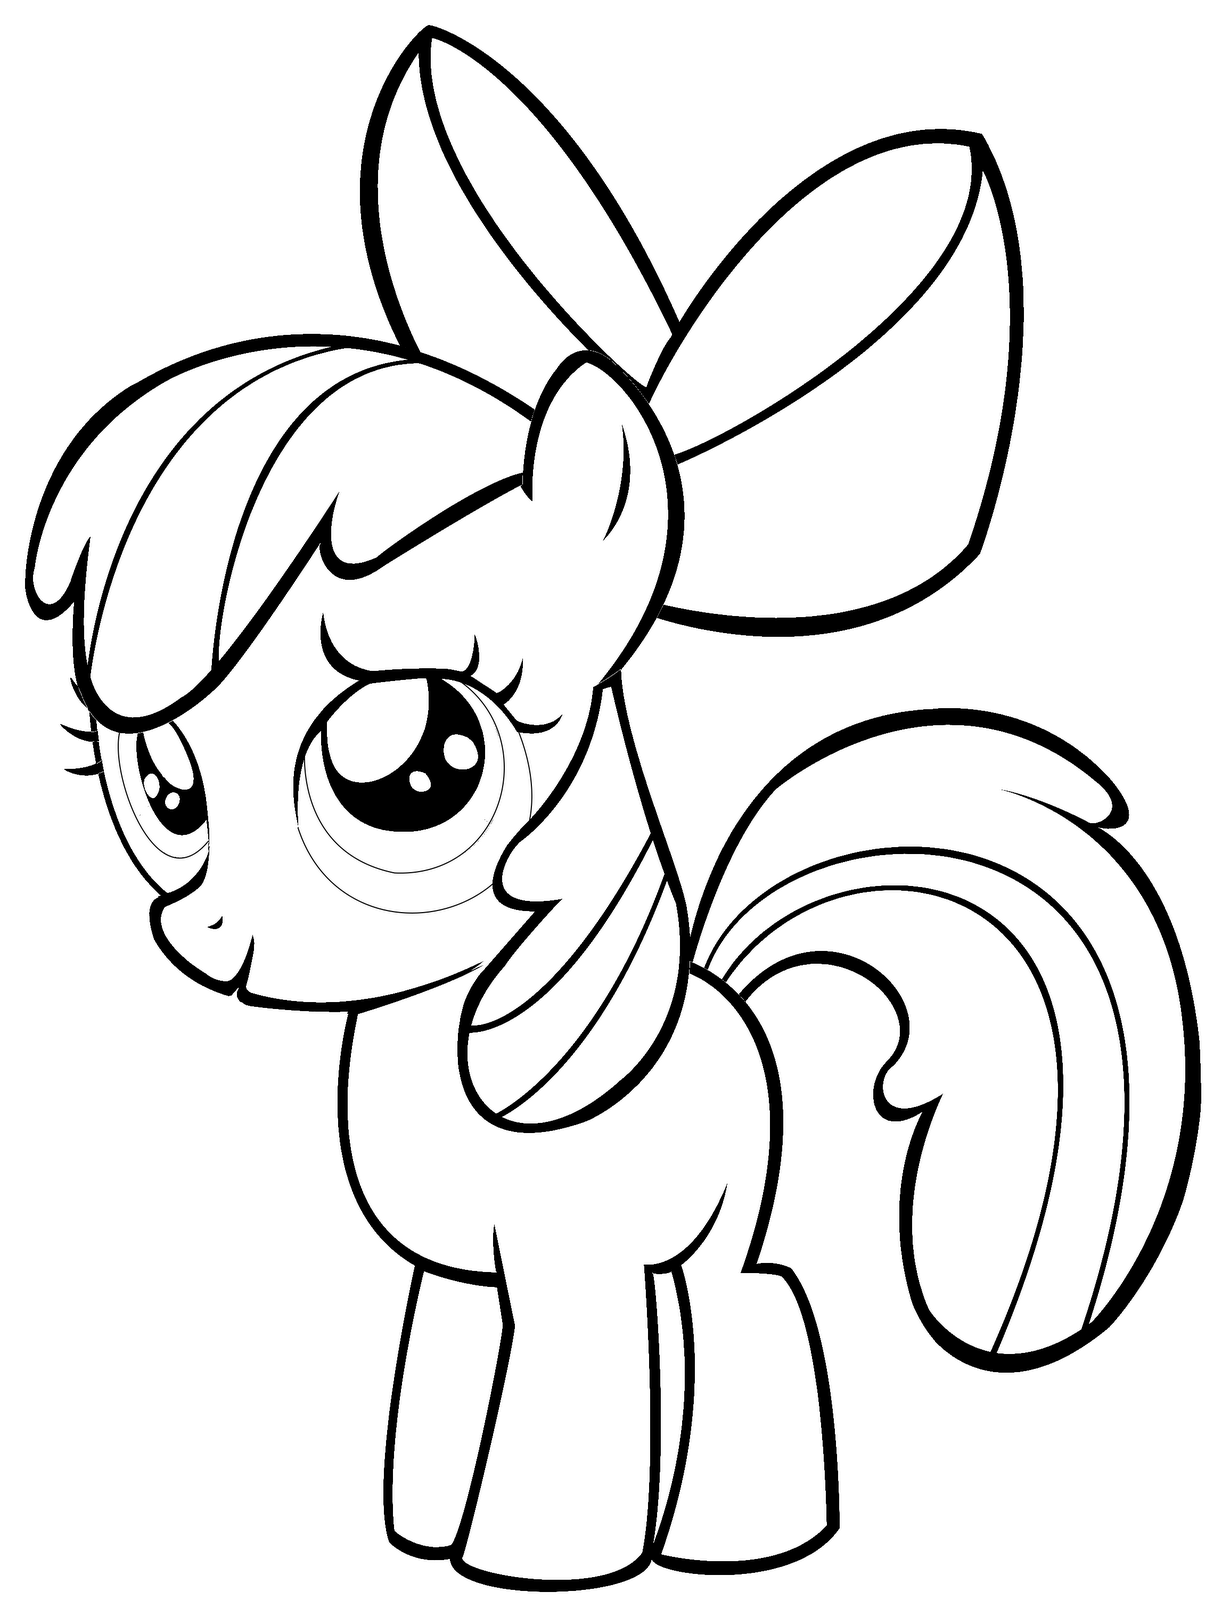 My little pony coloring pages scootaloo pony ~ My Little Pony Coloring Pages Scootaloo